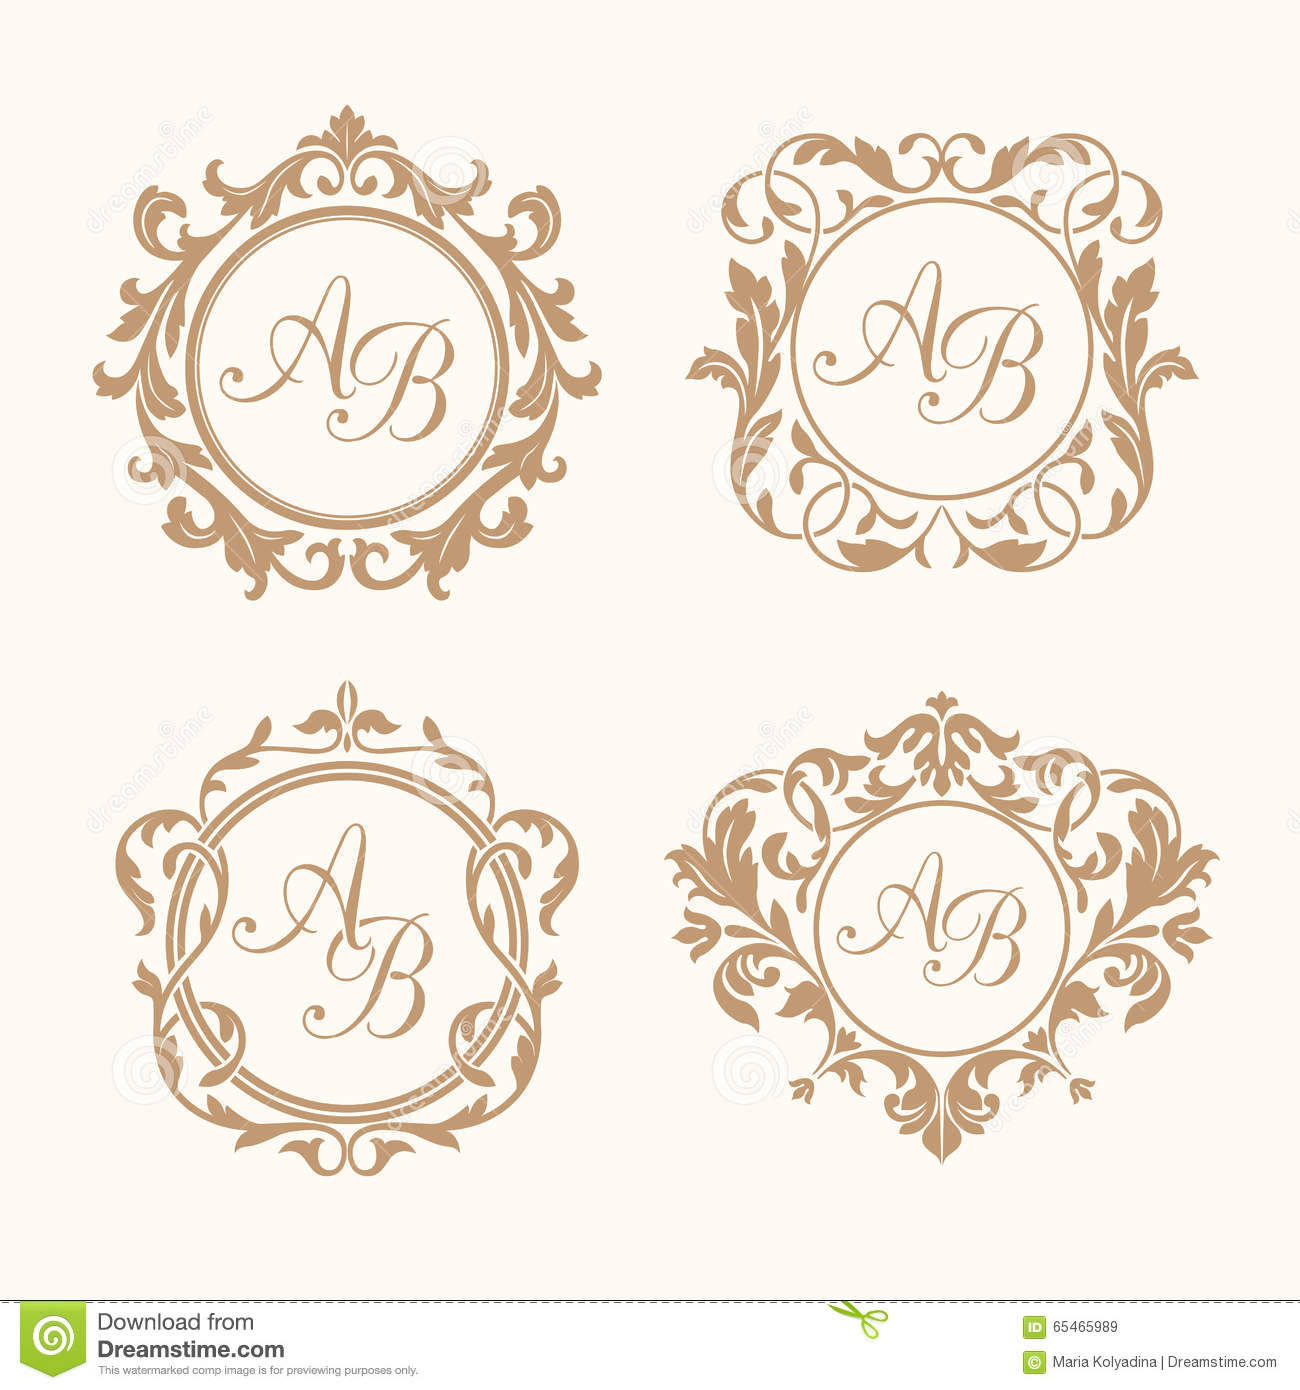 Set Of Elegant Floral Monograms Stock Vector Illustration of cute